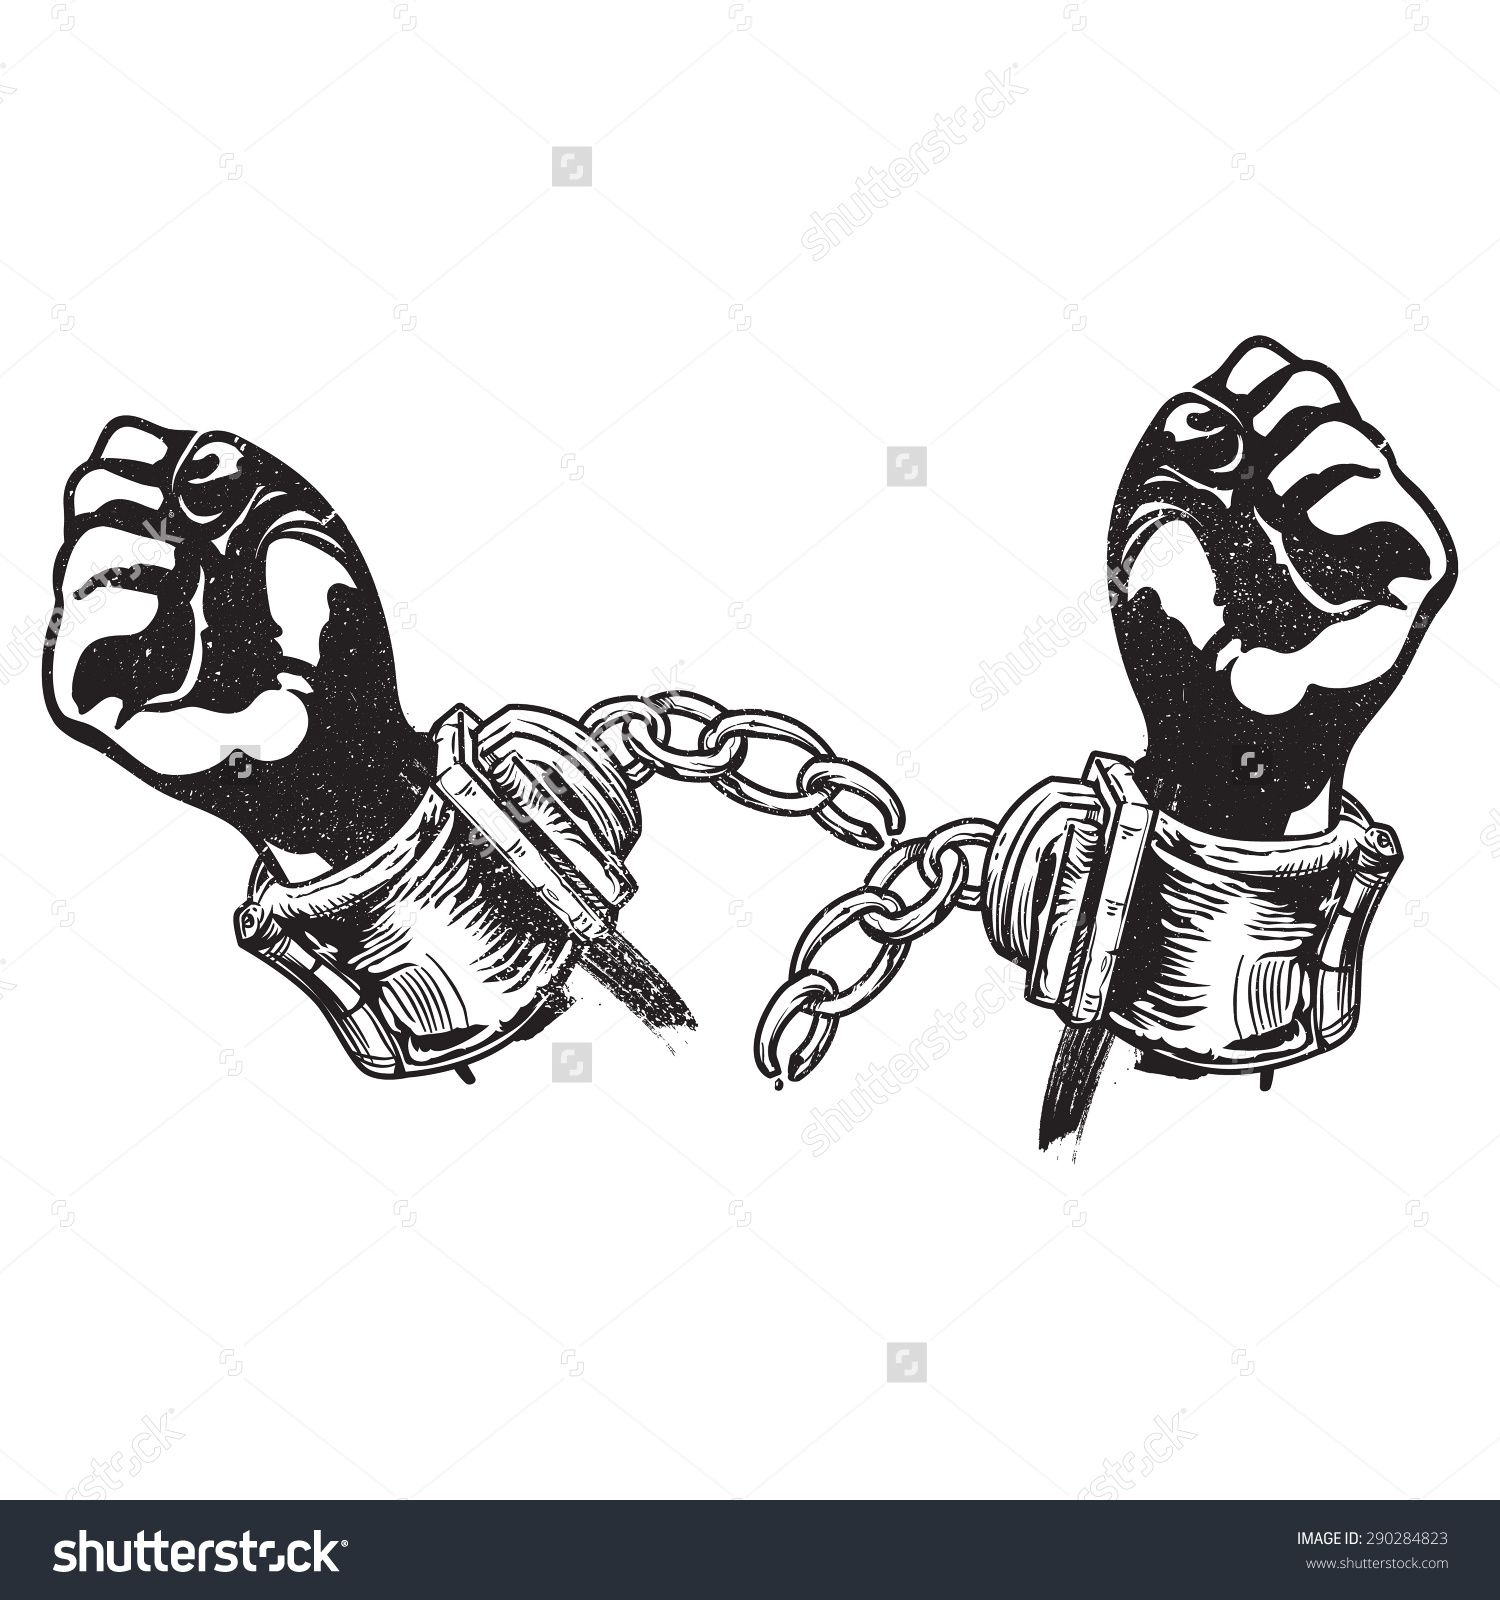 stock vector a vector illustration of broken handcuffs for